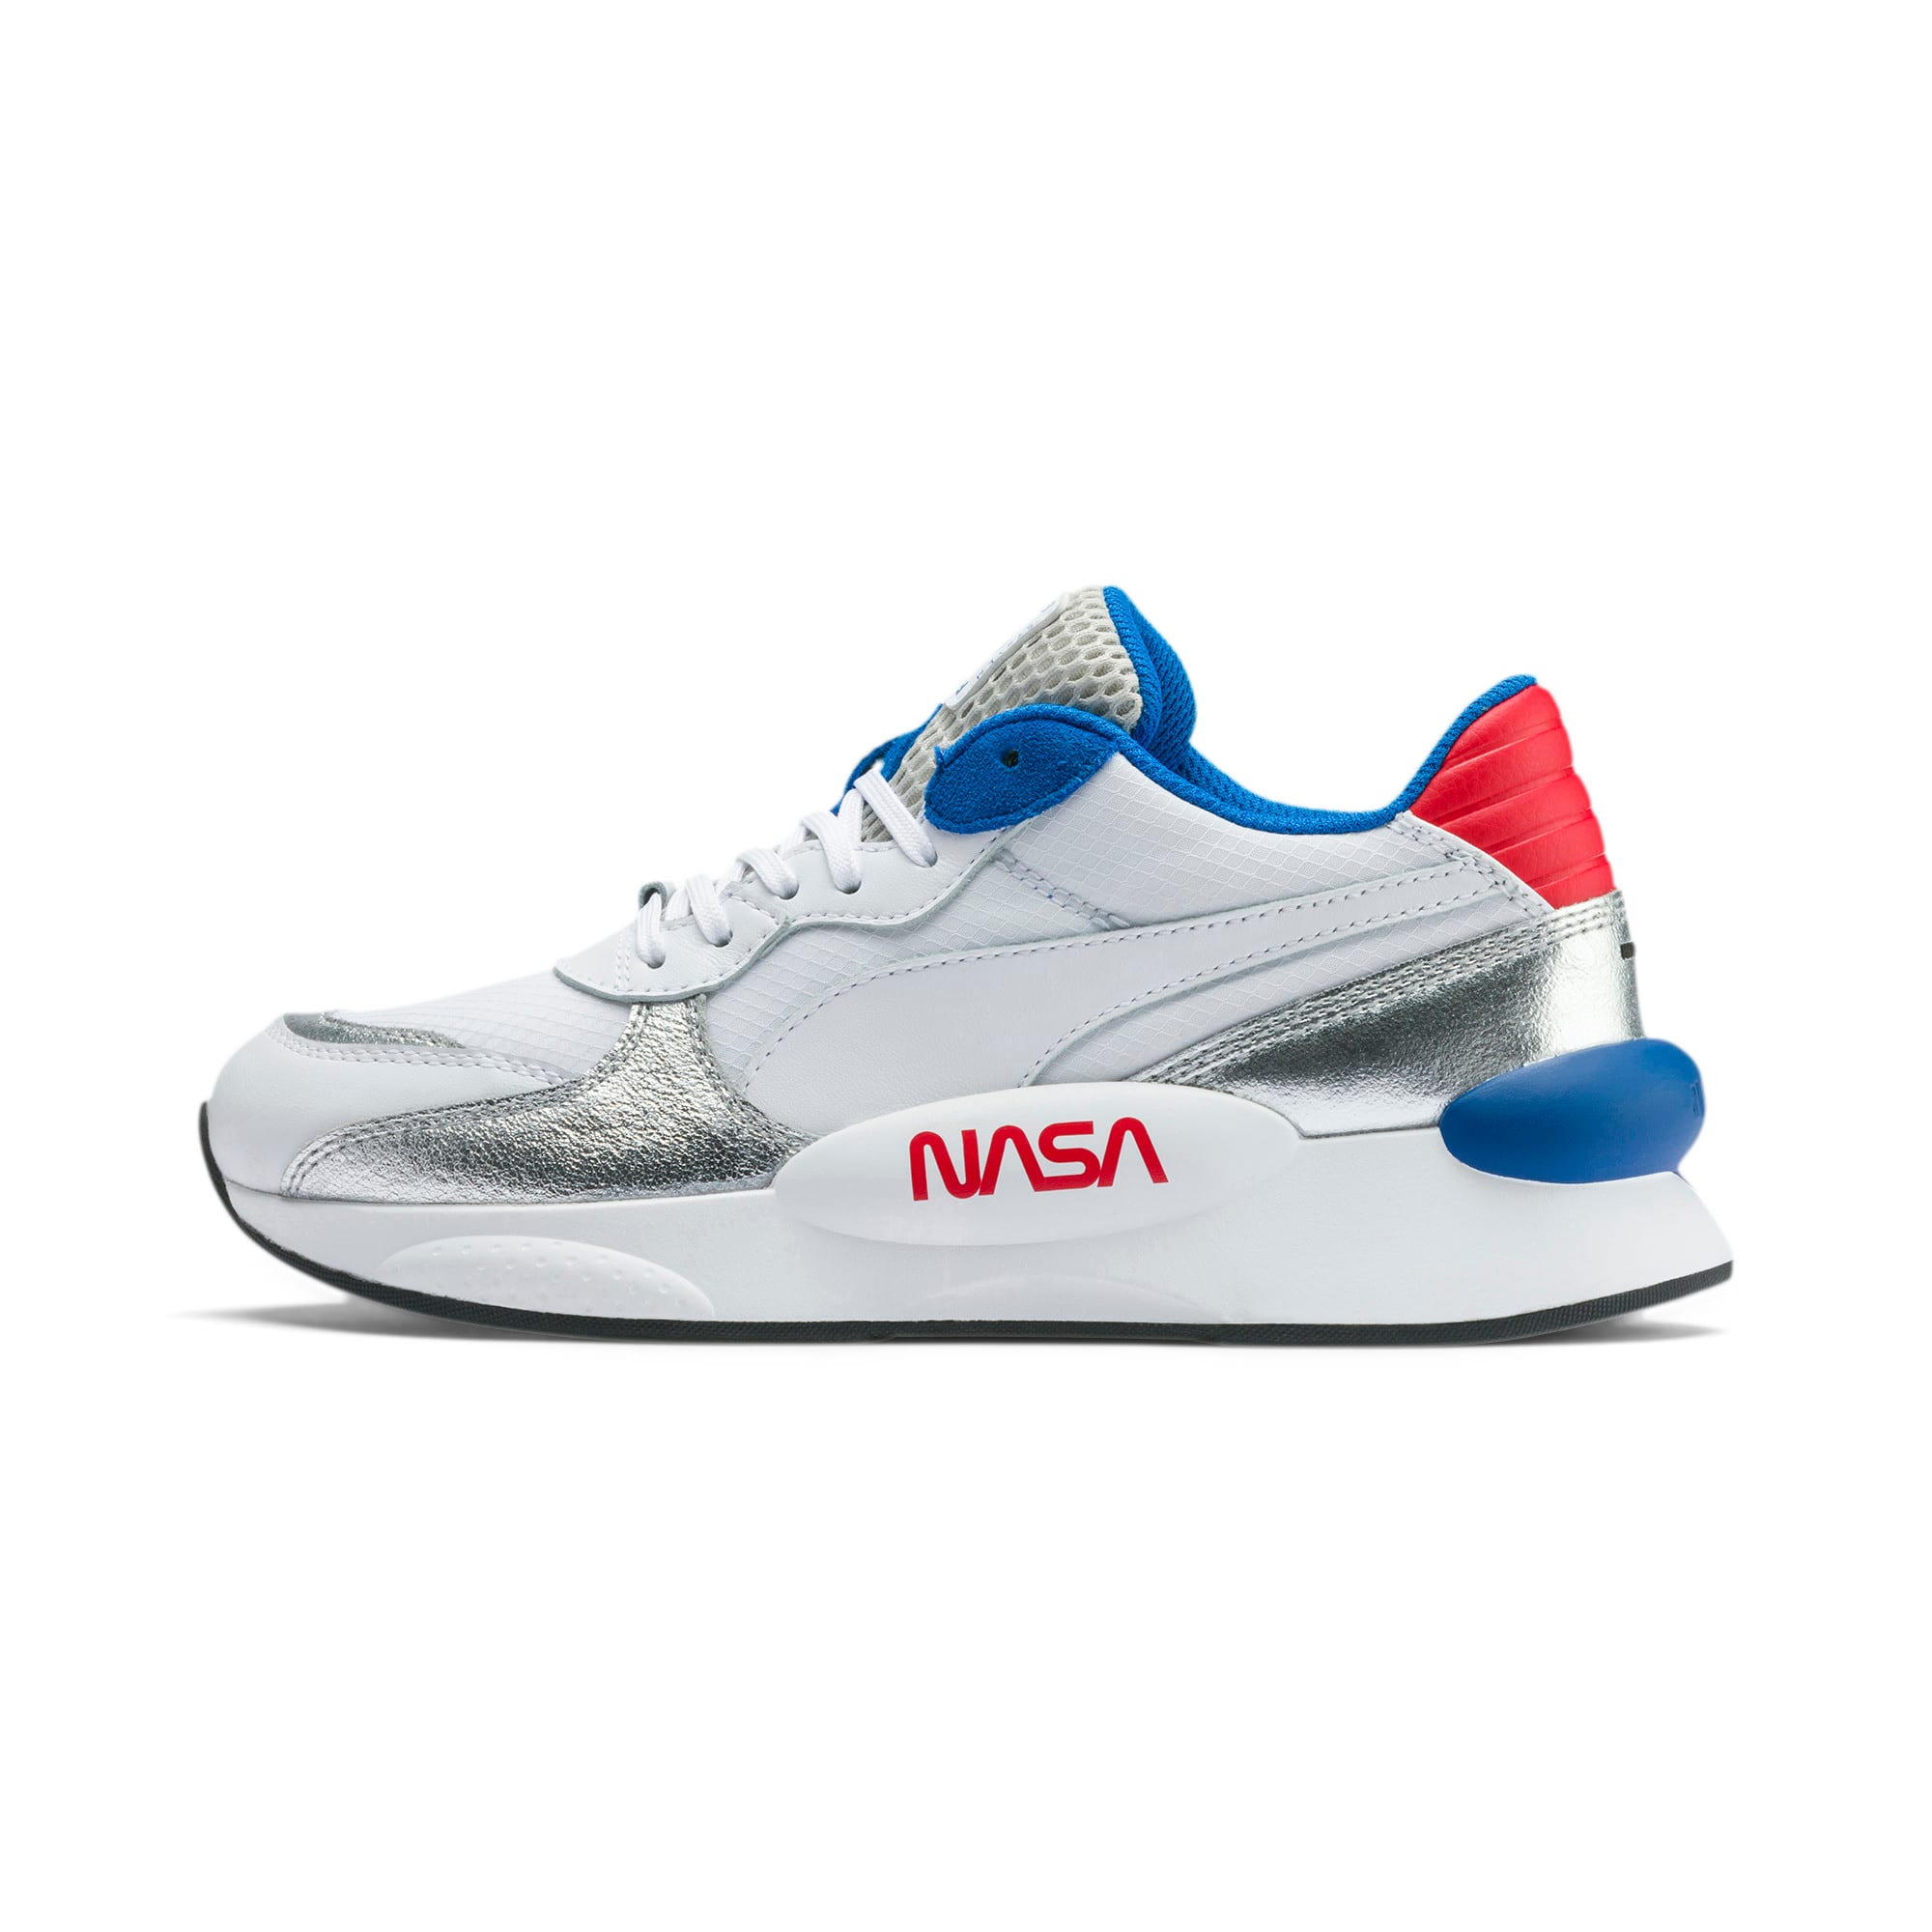 Thumbnail 1 of RS 9.8 Space Explorer Youth Trainers, Puma White-Puma Silver, medium